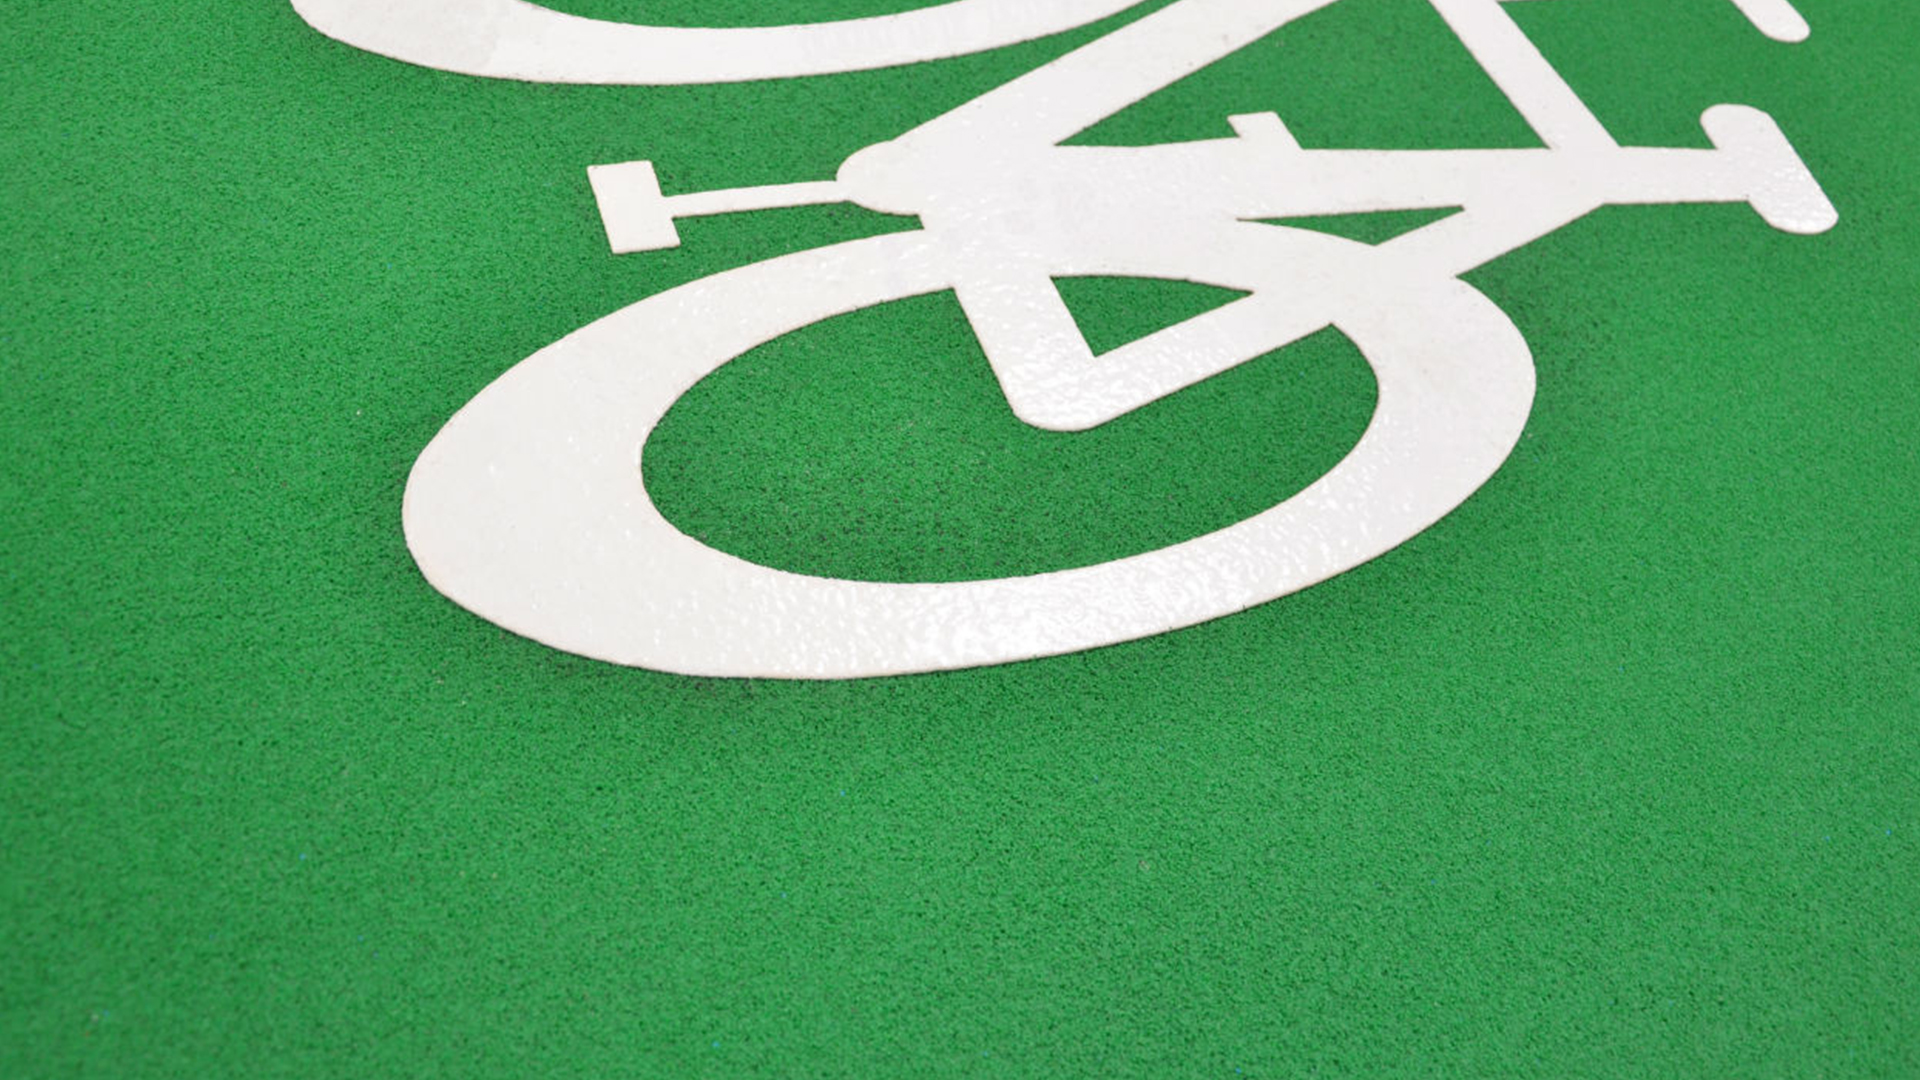 VeloGrip | Cold Applied Cycle Path Material